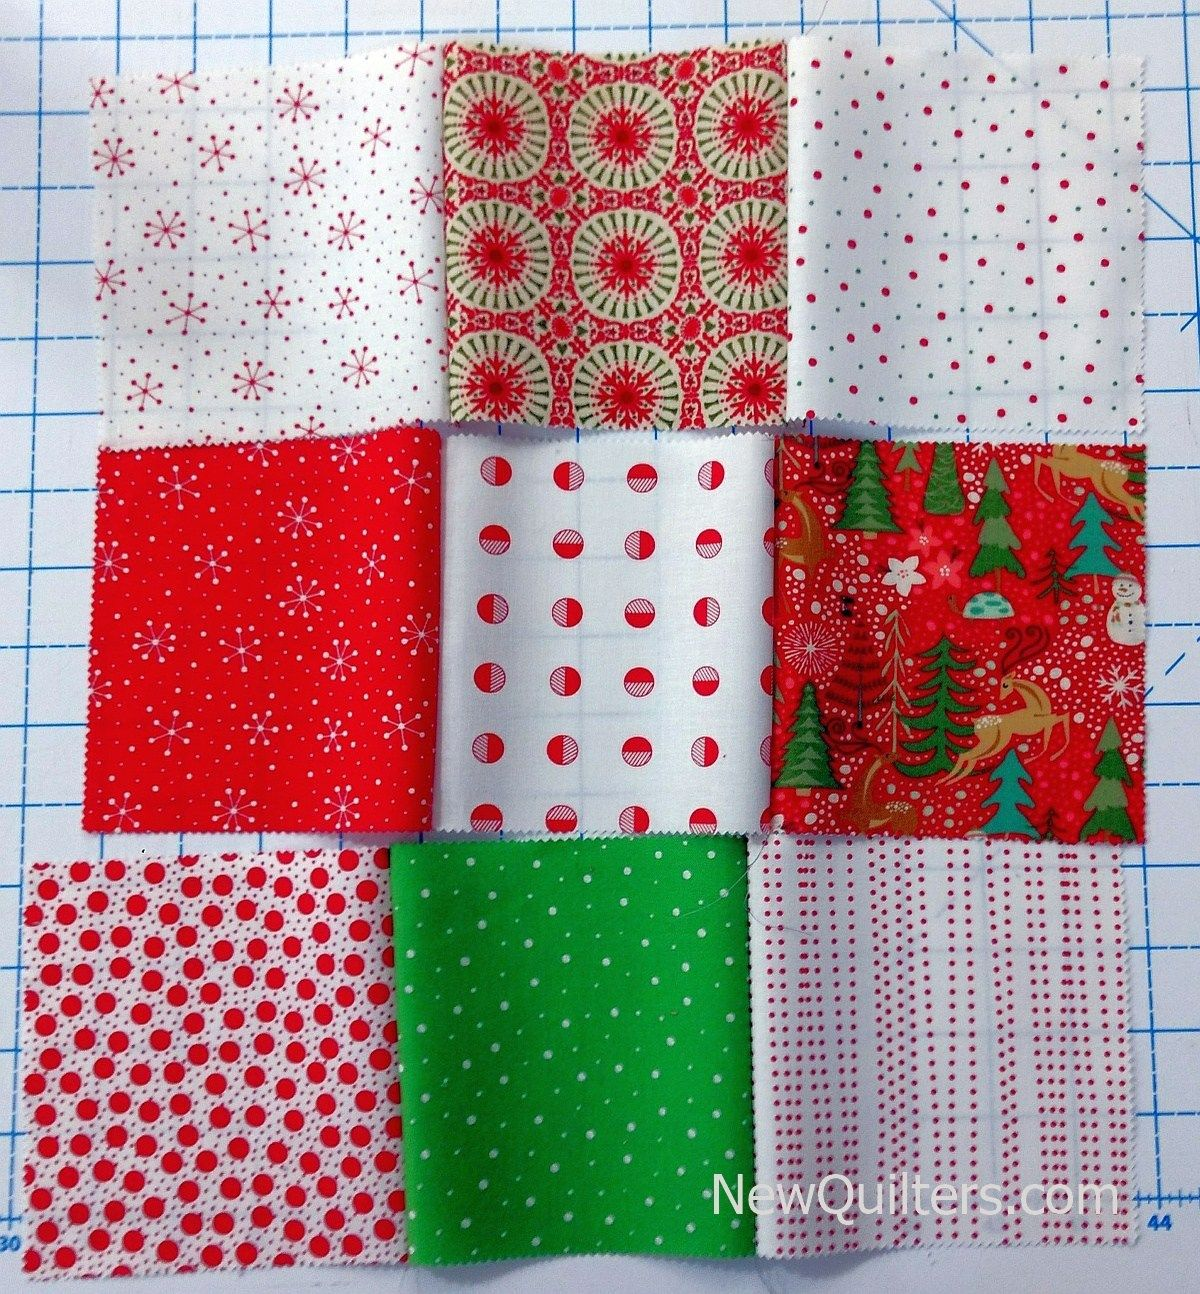 12 Days Of Christmas Quilted Table Runner Tutorial Quilted Table Runners Christmas Holiday Table Runner Quilted Table Runners